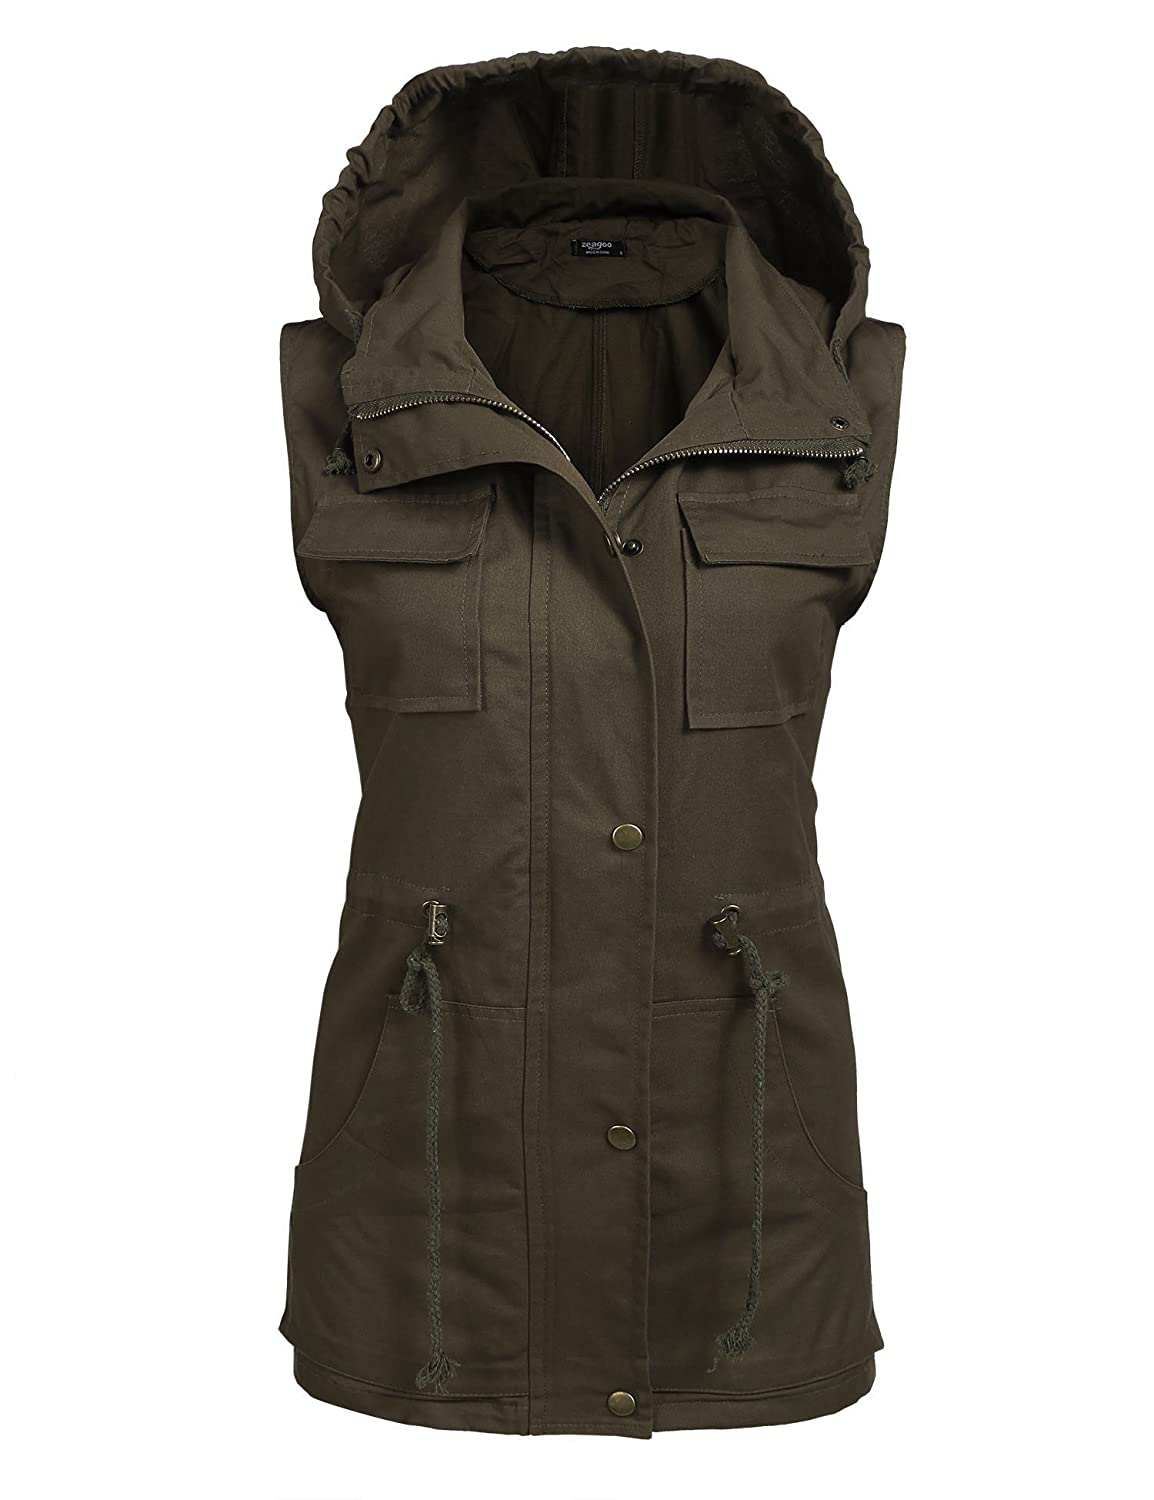 Zeagoo Womens Lightweight Sleeveless Military Anorak Vest ZTH005702